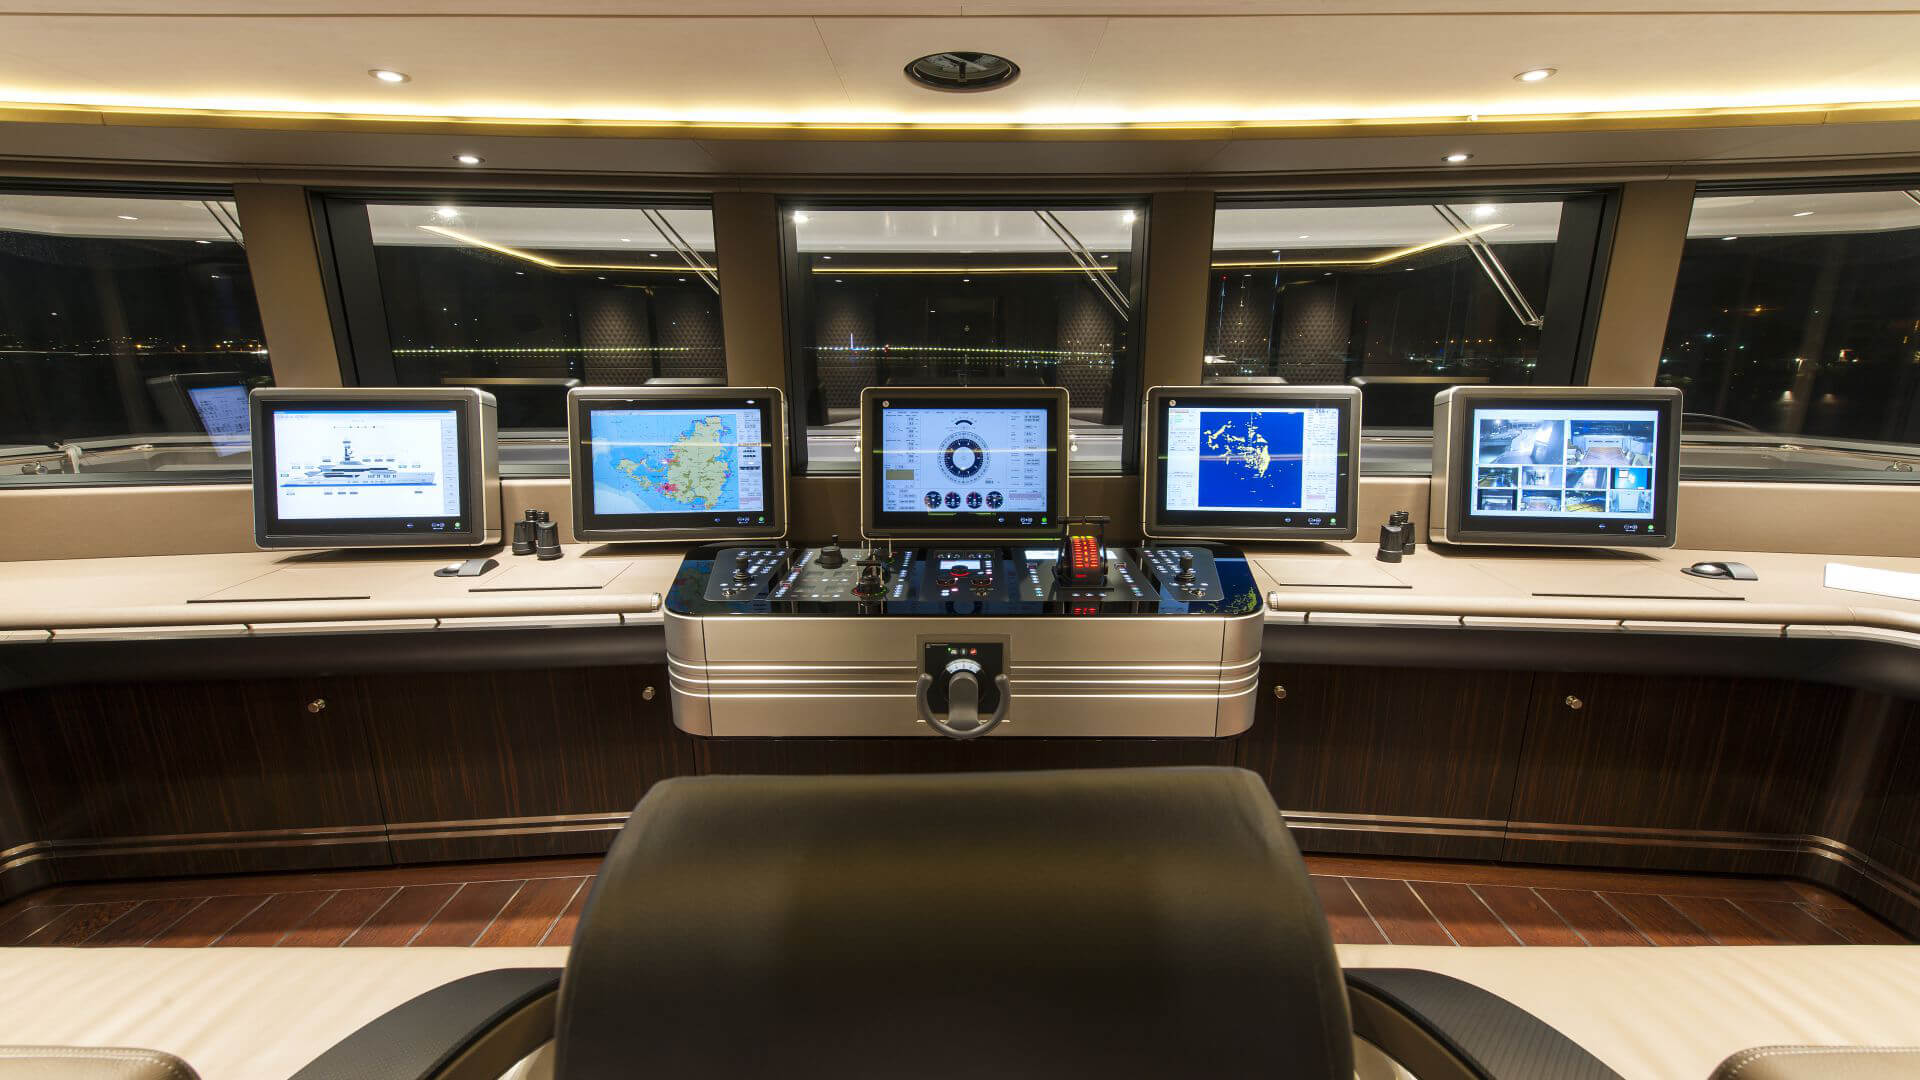 bsw yachteinrichter with yacht interior for high quality control center on luxury motor yacht.